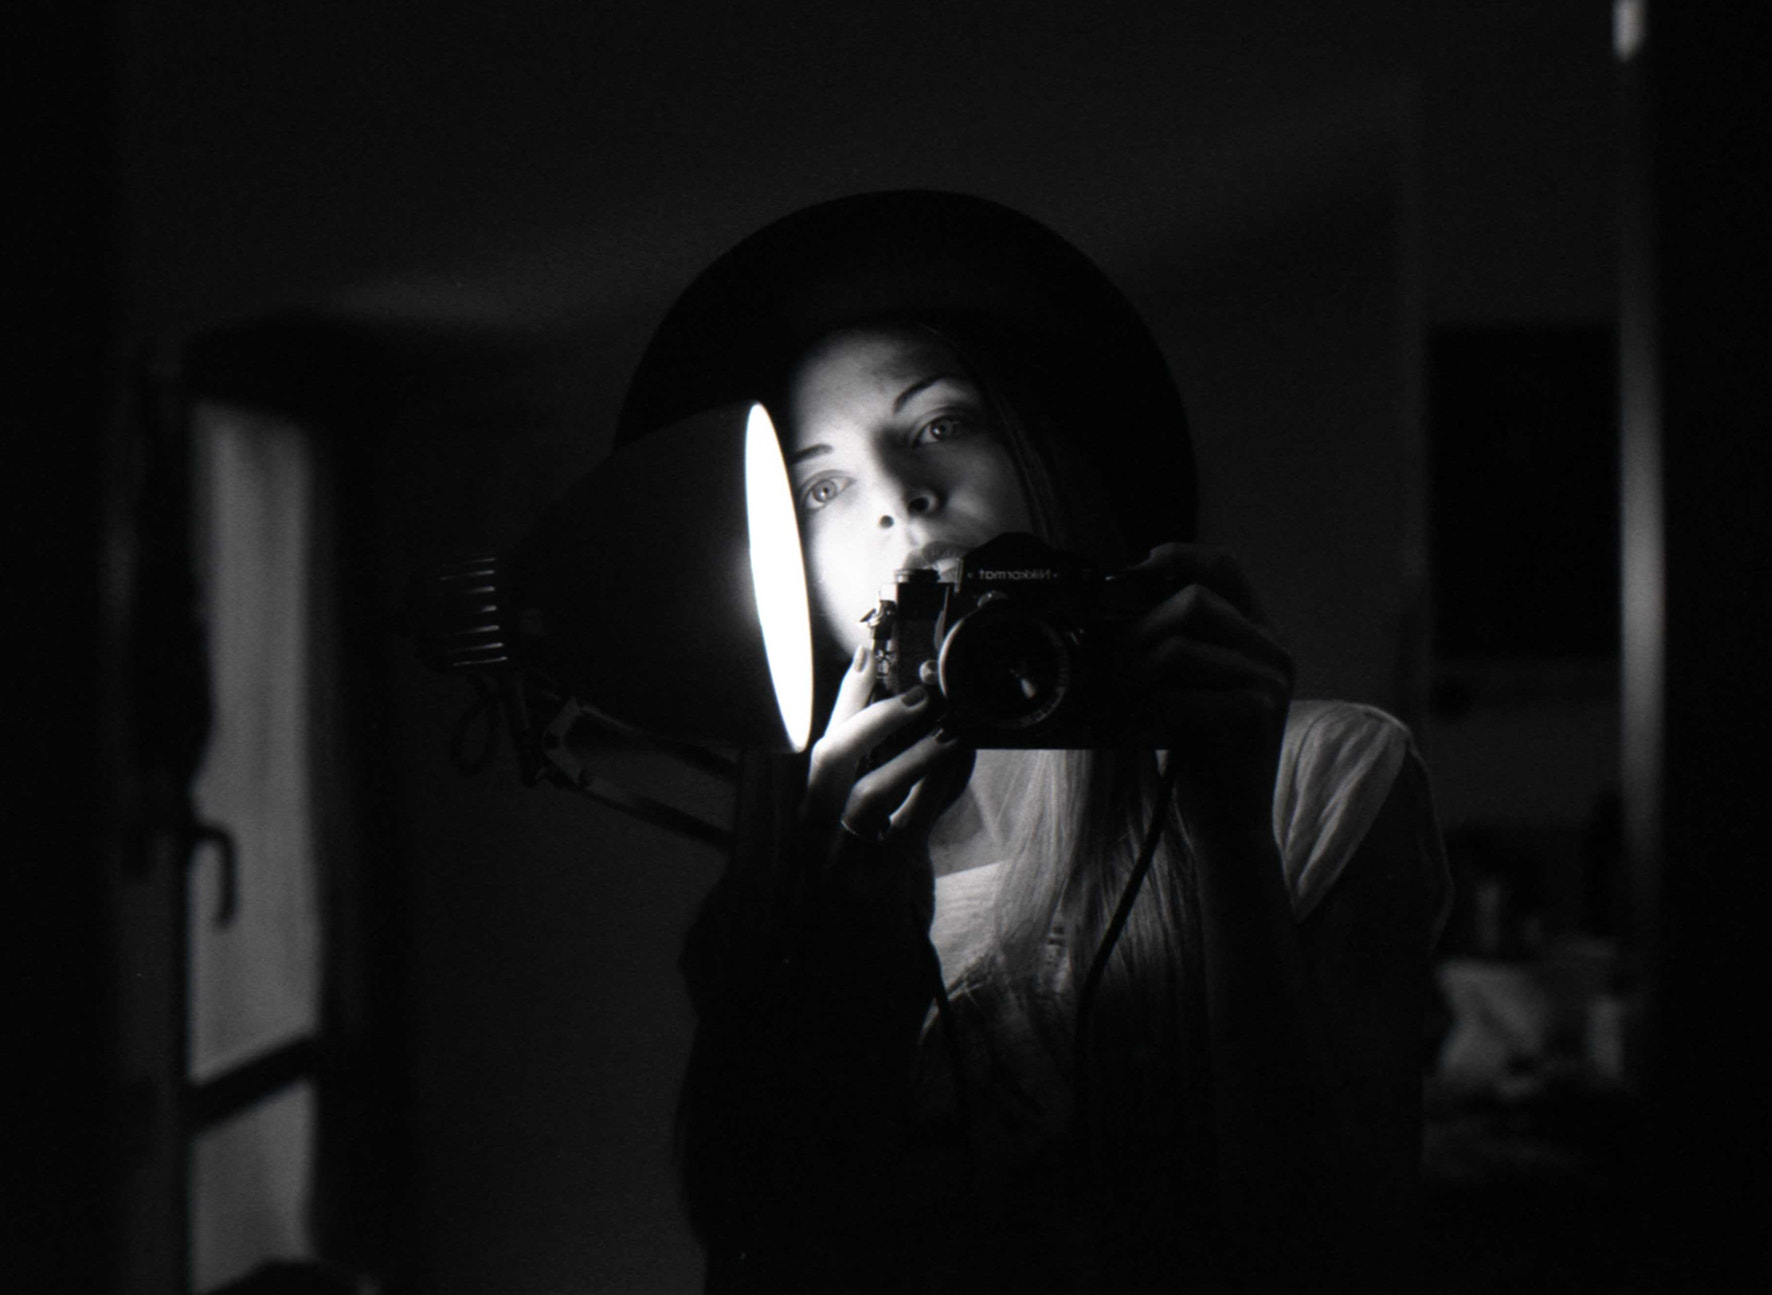 Photograph Self portrait with nikkormat by Luna Simoncini on 500px